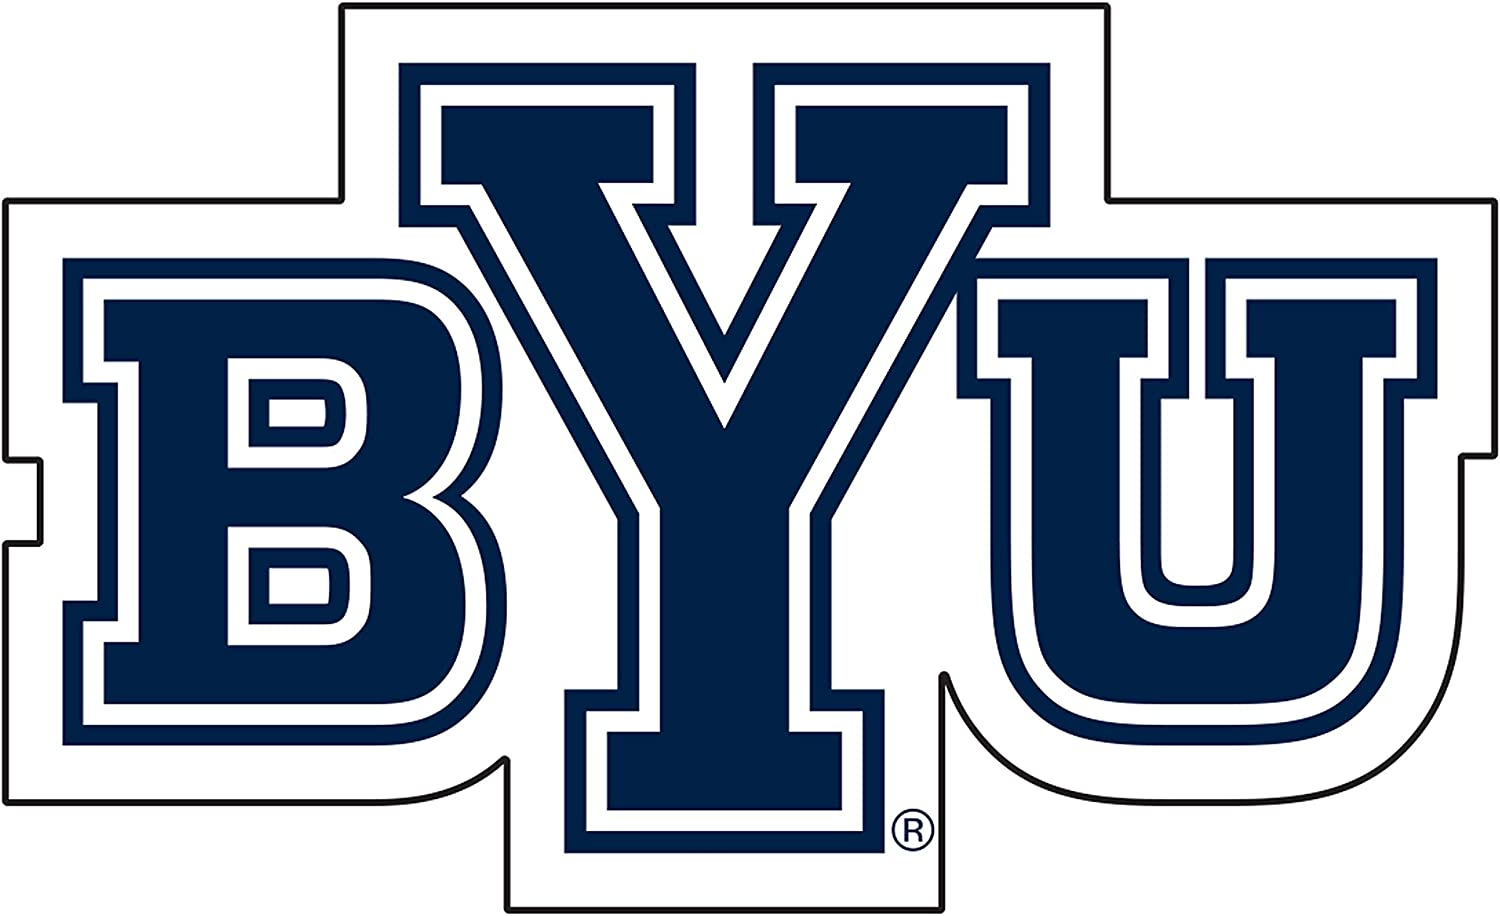 Amazon.com : Craftique BYU Cougars Decal : Sports & Outdoors